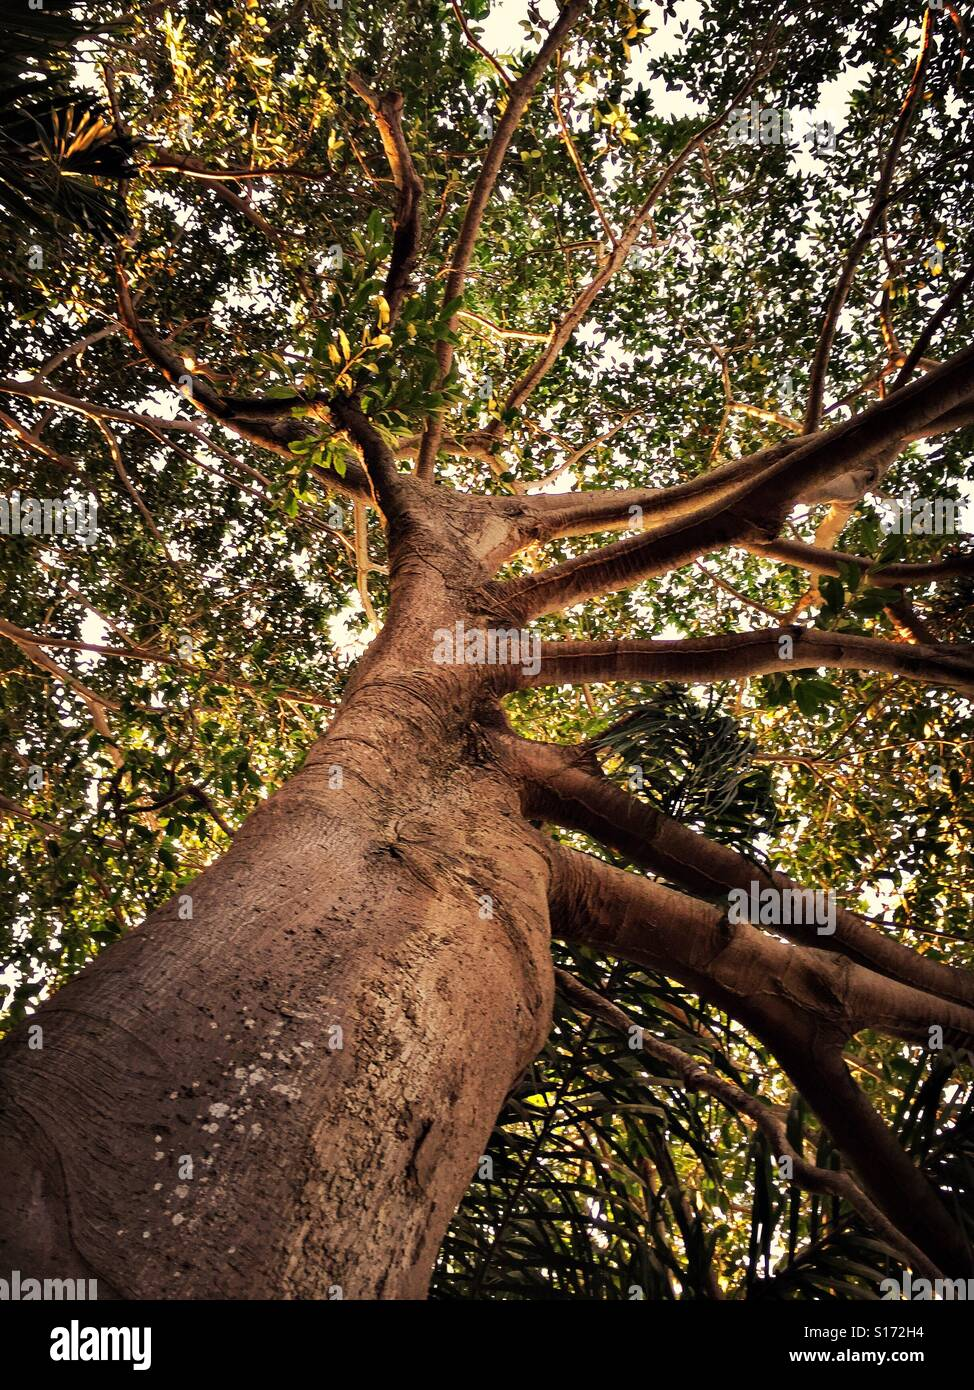 Looking up the trunk and into the canopy of branches and leaves, early morning sunlight begins to infiltrate a giant - Stock Image